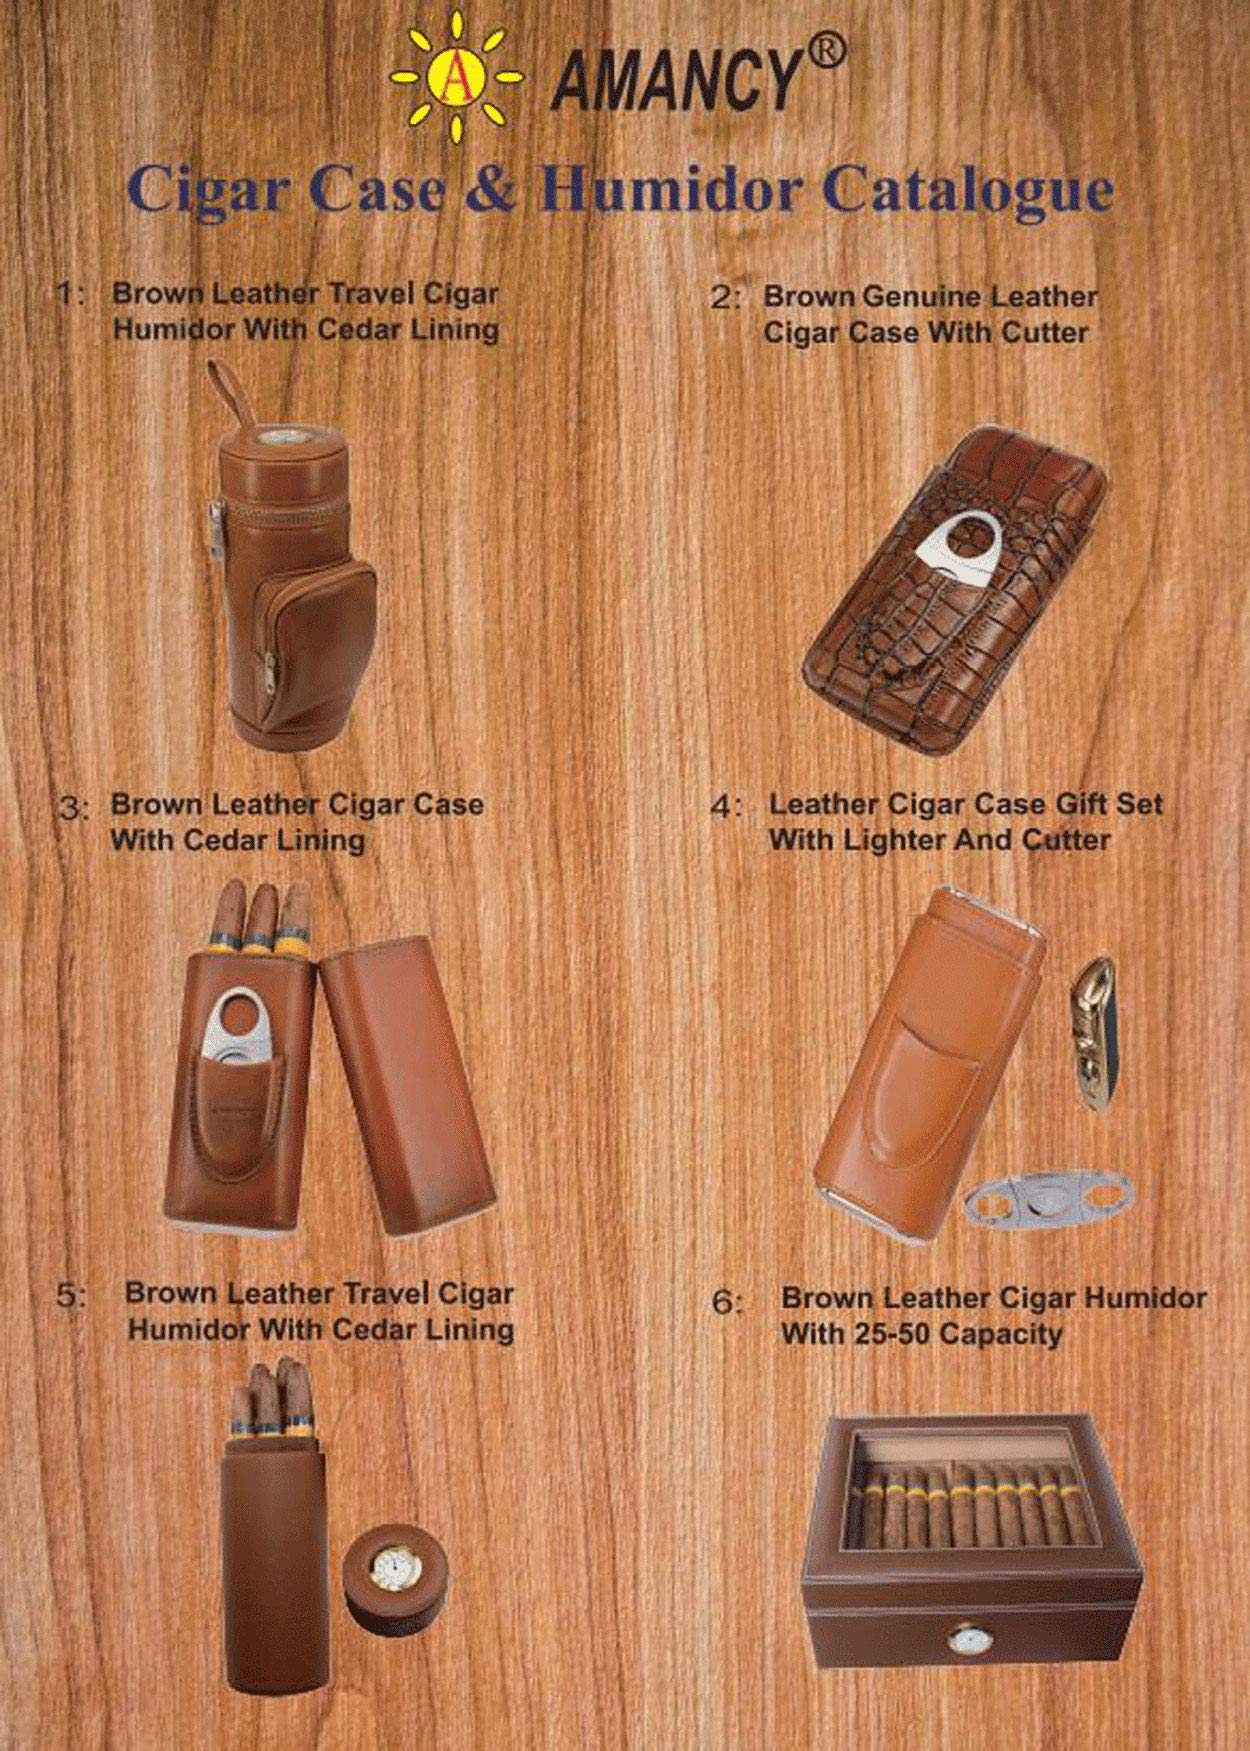 AMANCY Top Quality 3- Finger Brown Leather Cigar Case, Cedar Wood Lined Cigar Humidor with Silver Stainless Steel Cutter by AMANCY (Image #7)